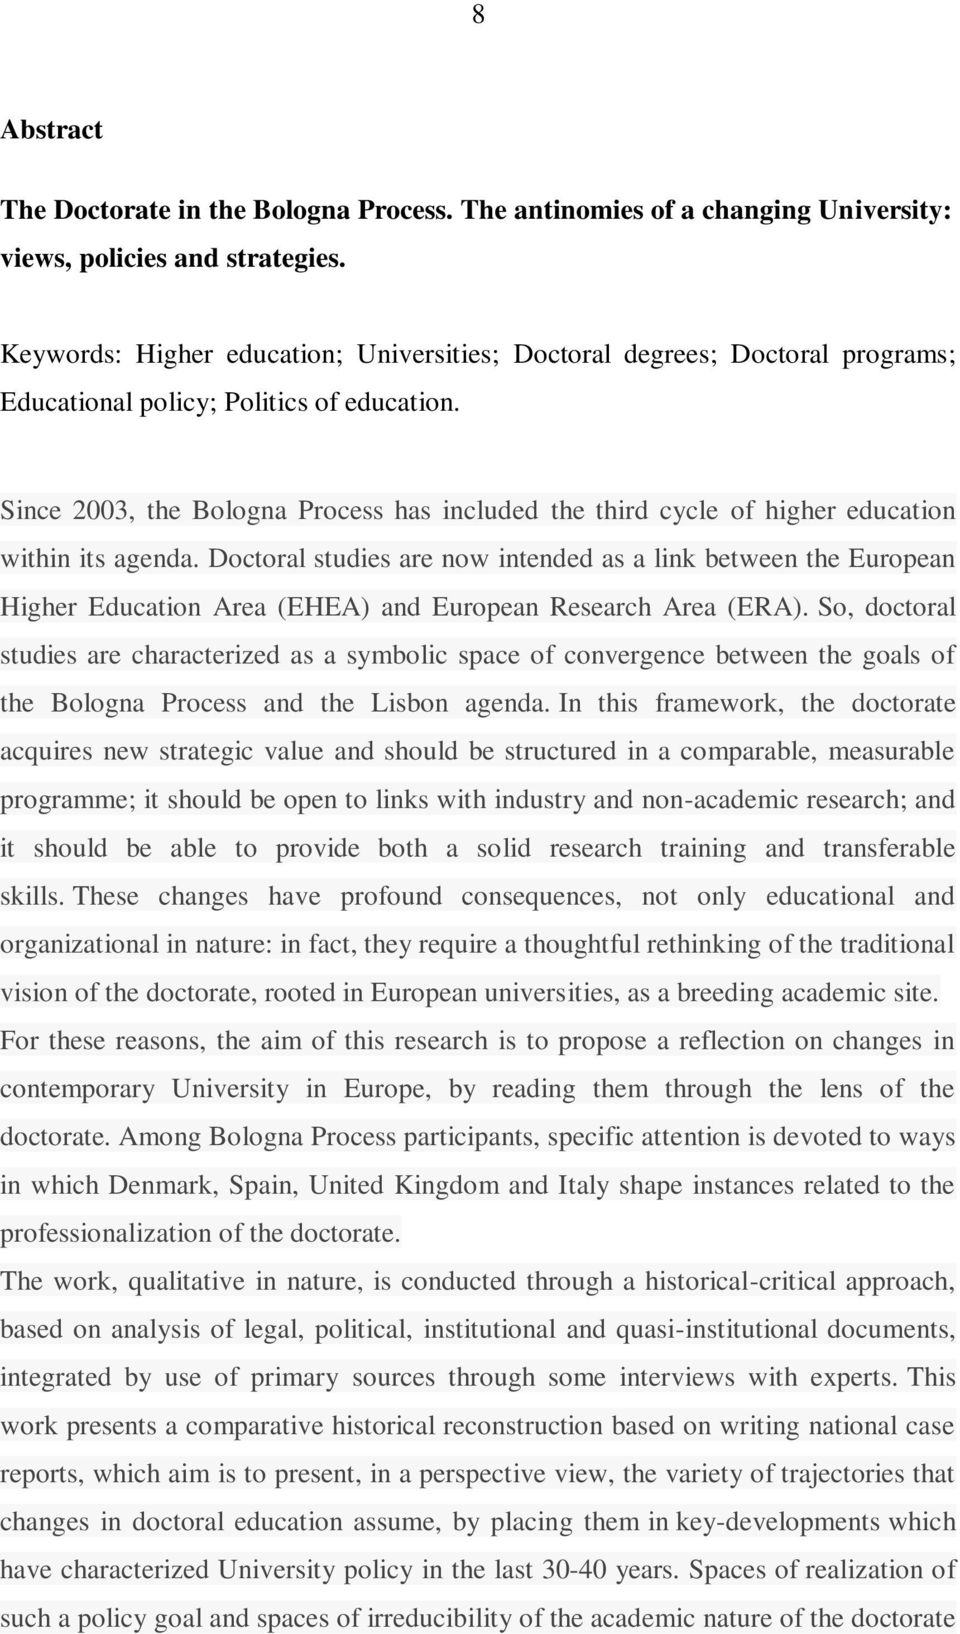 Since 2003, the Bologna Process has included the third cycle of higher education within its agenda.